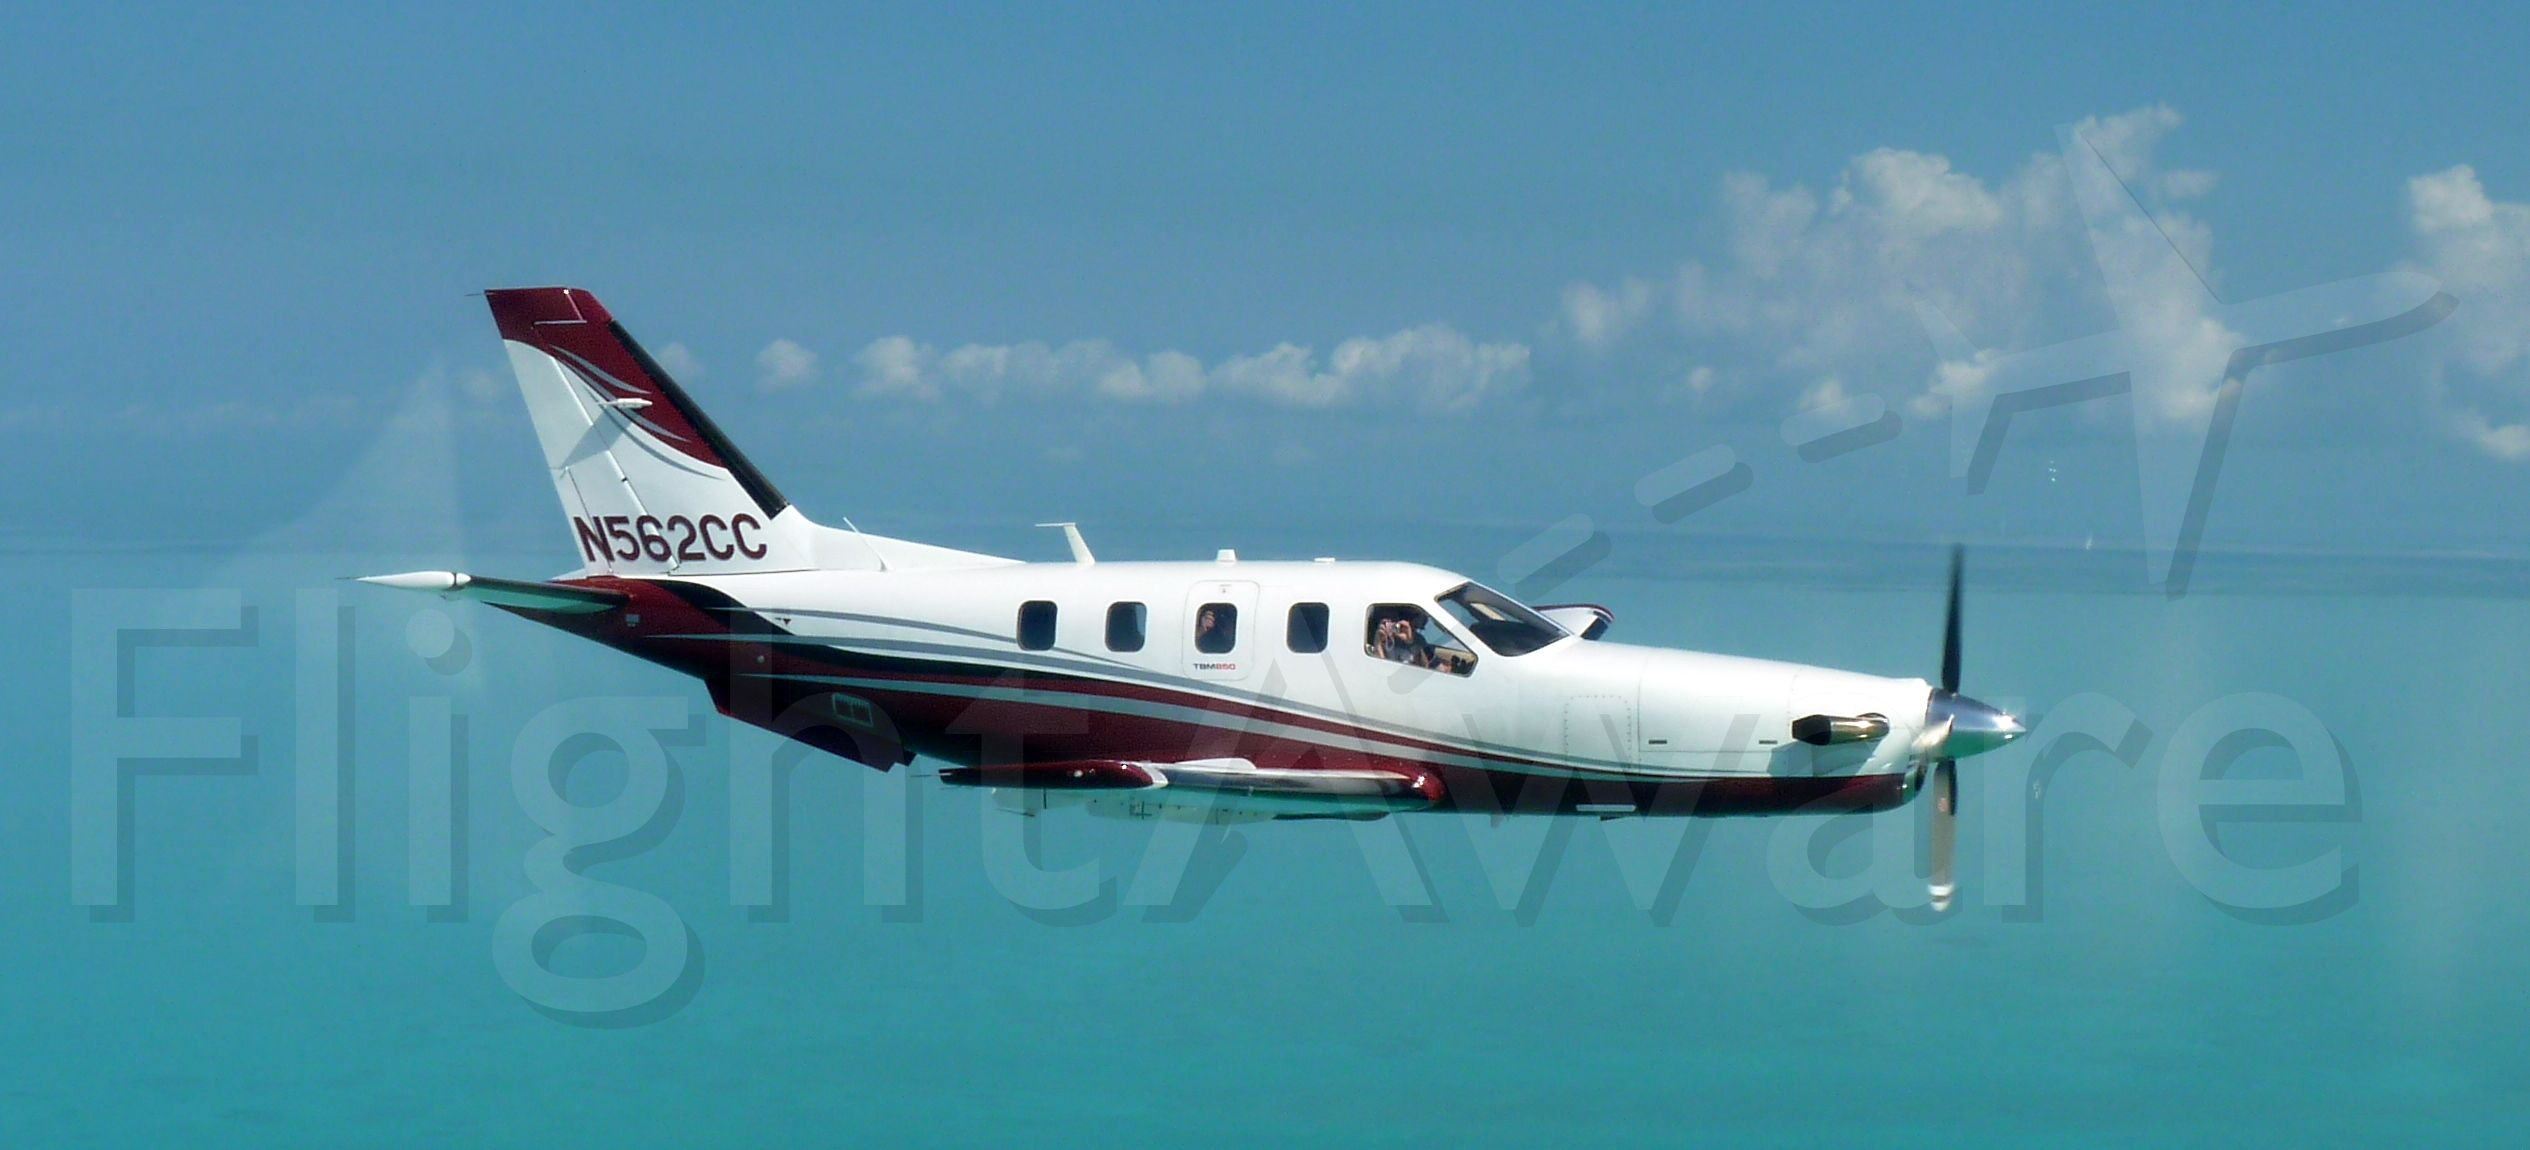 Socata TBM-850 (N562CC) - On the way to the Private Island of Ambergris Cay in the Turks and Caicos